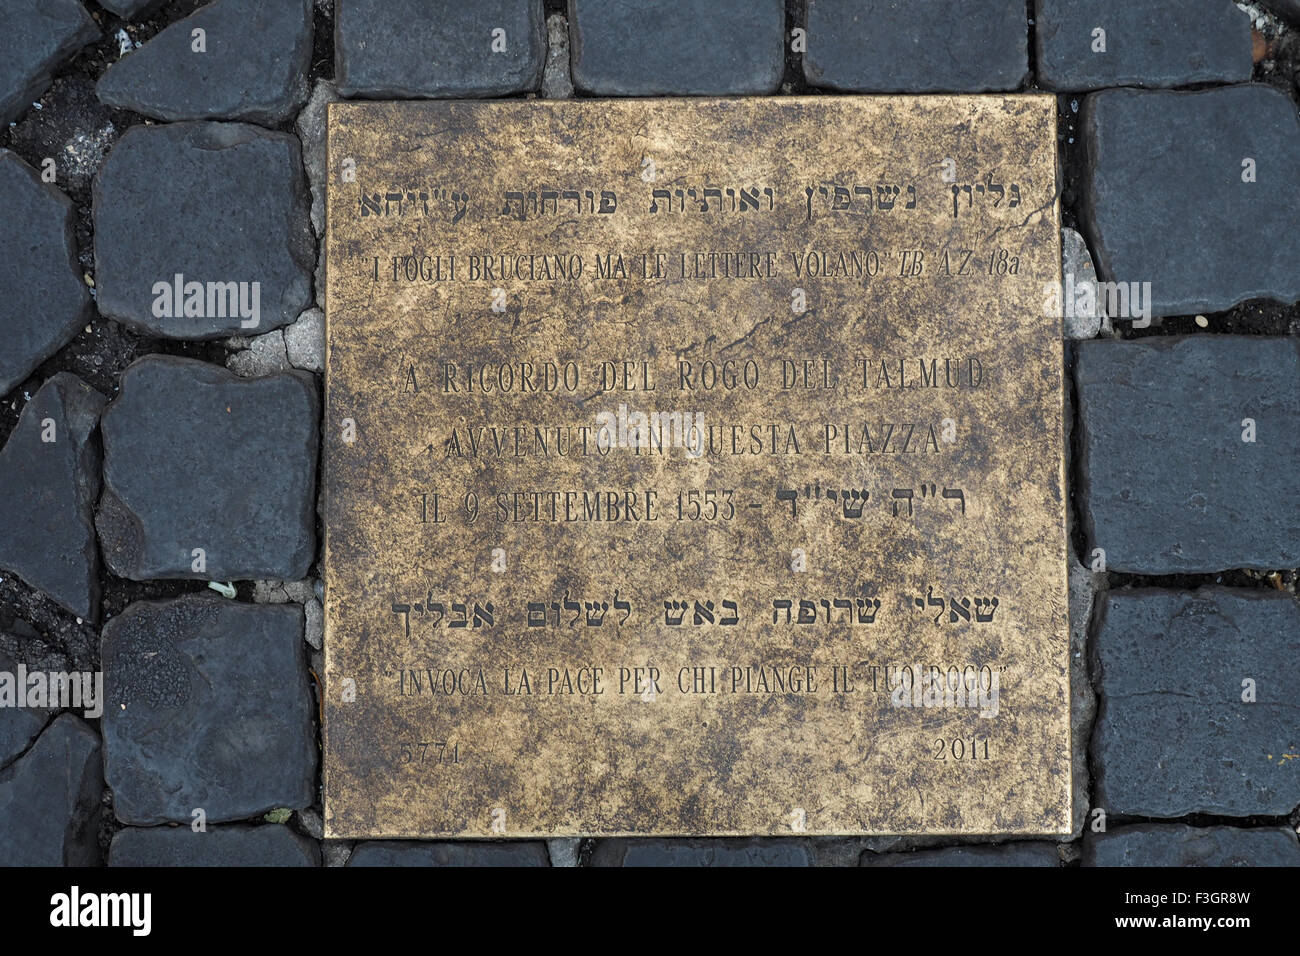 A brass plaque on the ground set in cobblestones. - Stock Image